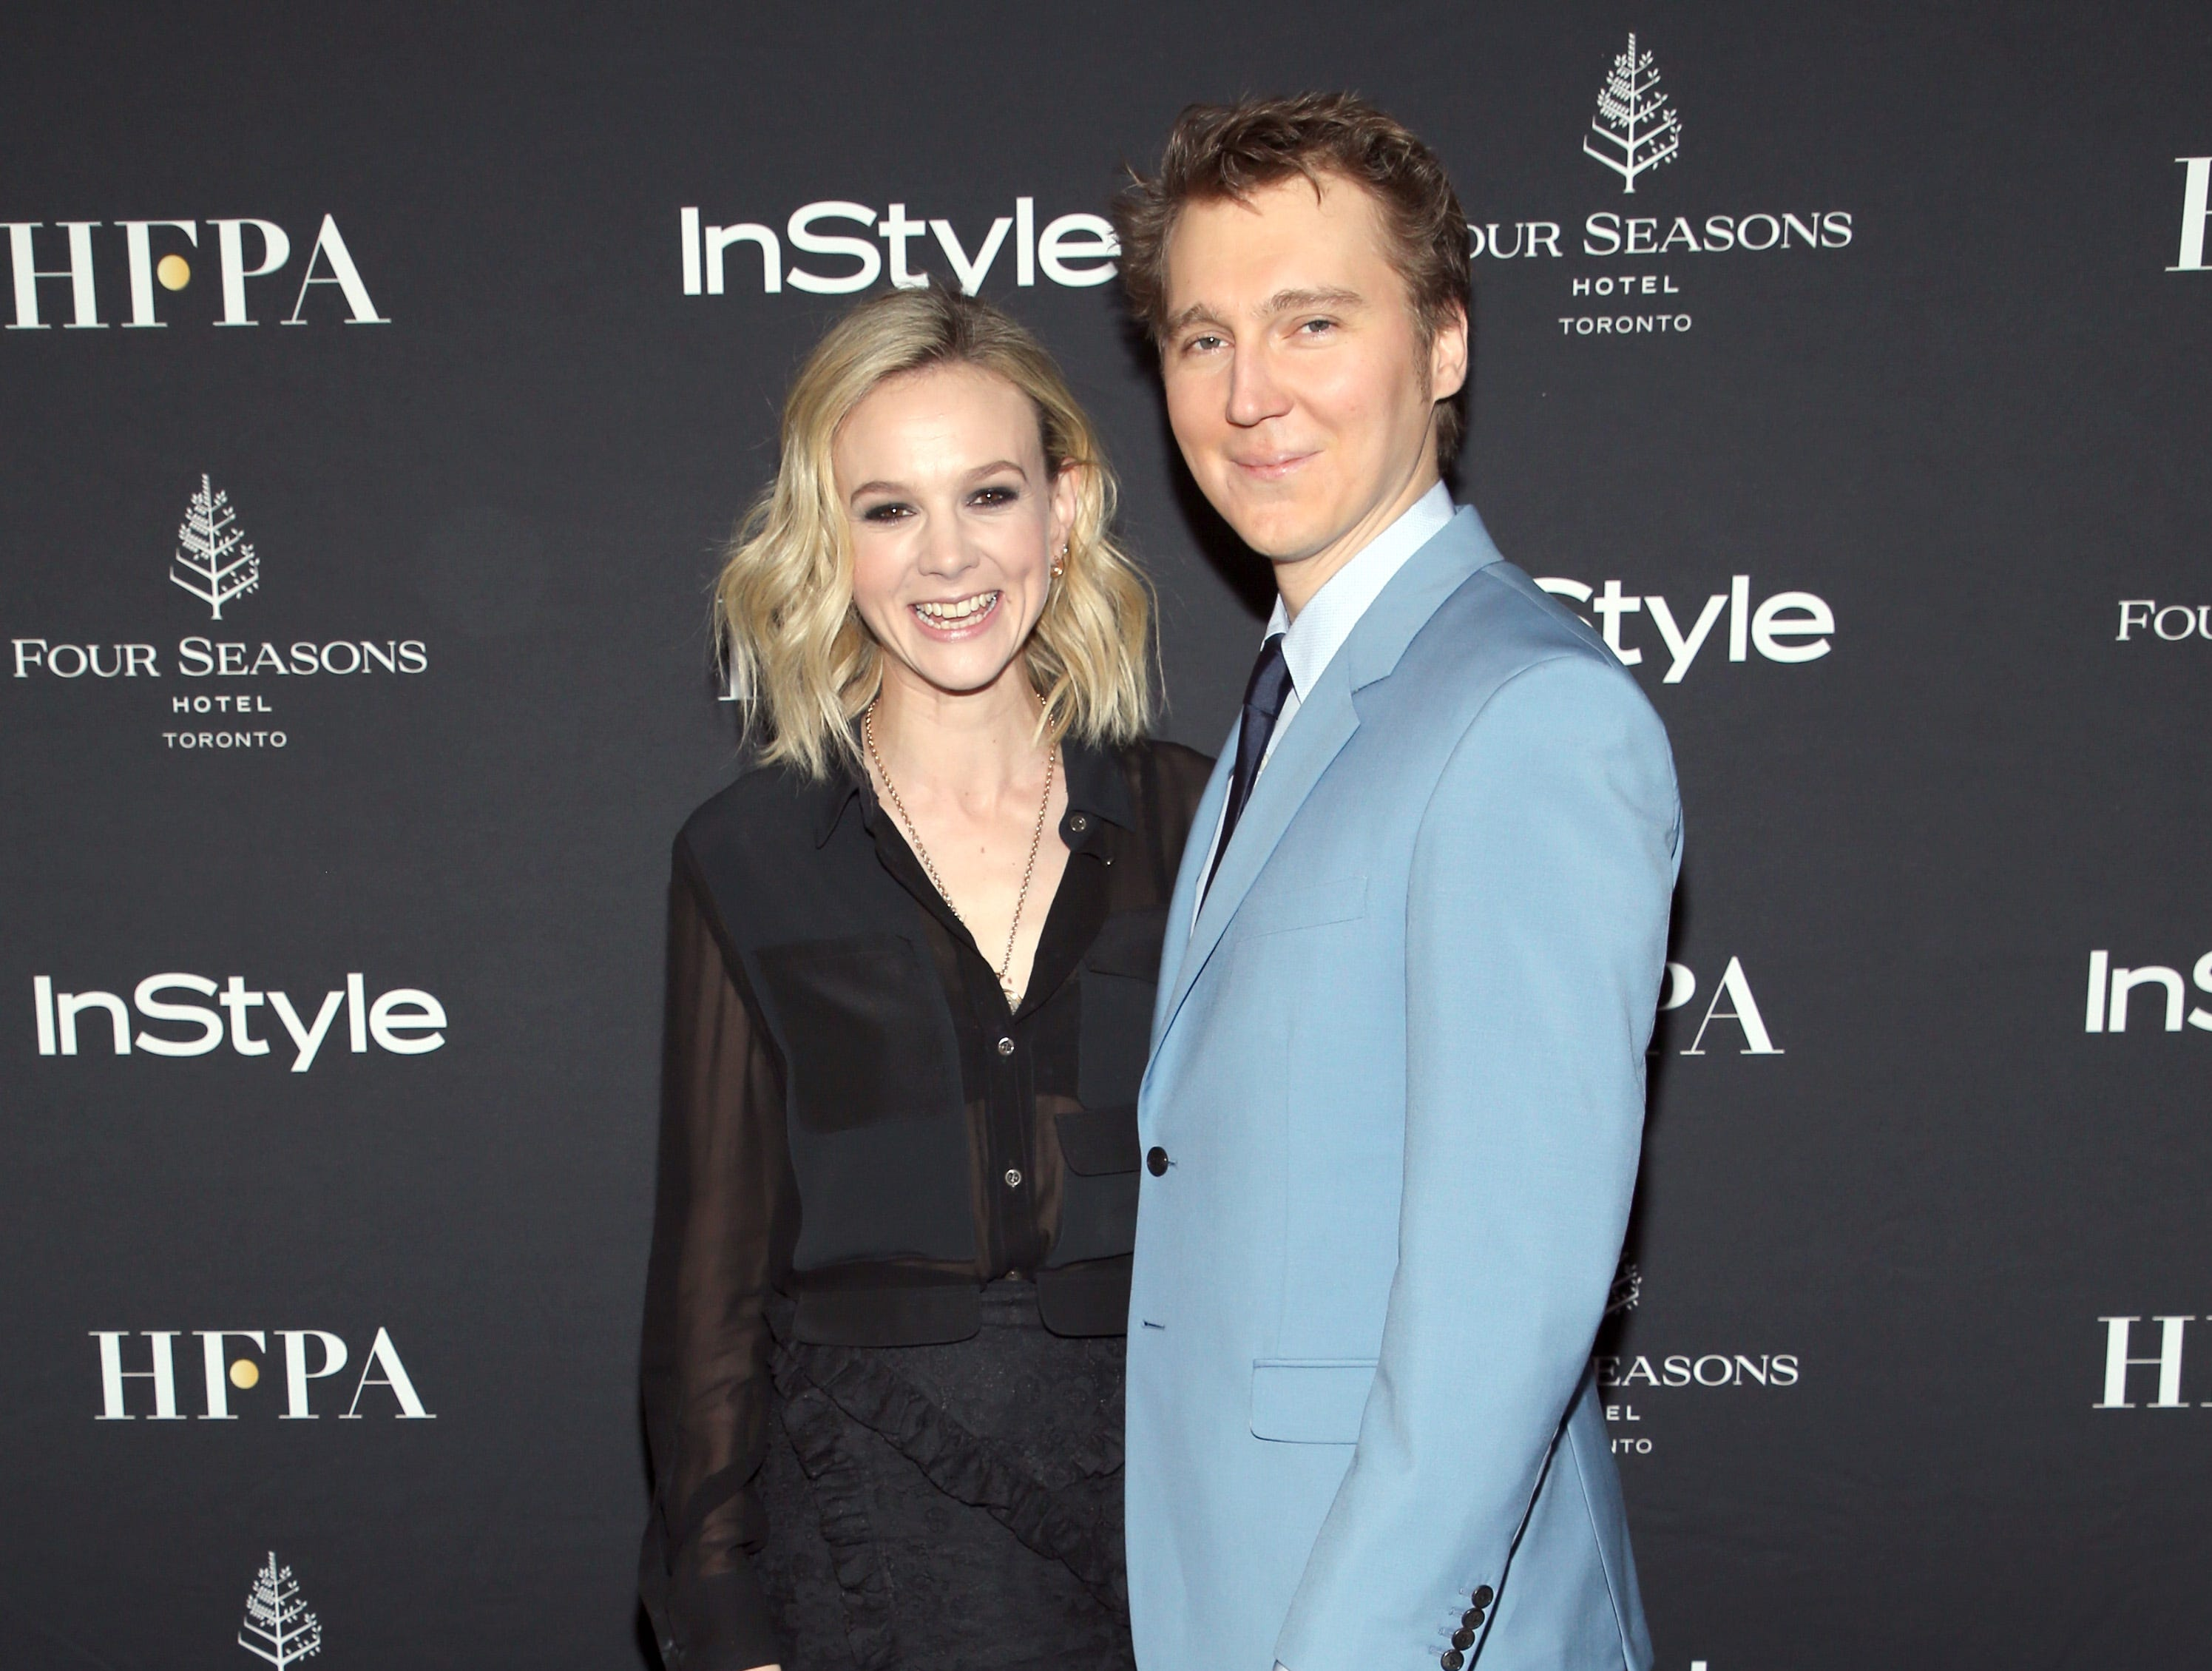 TORONTO, ON - SEPTEMBER 08: Carey Mulligan and Paul Dano attend The Hollywood Foreign Press Association and InStyle Party during 2018 Toronto International Film Festival at Four Seasons Hotel on September 8, 2018 in Toronto, Canada.  (Photo by Phillip Faraone/WireImage) ORG XMIT: 775218499 ORIG FILE ID: 1029587684